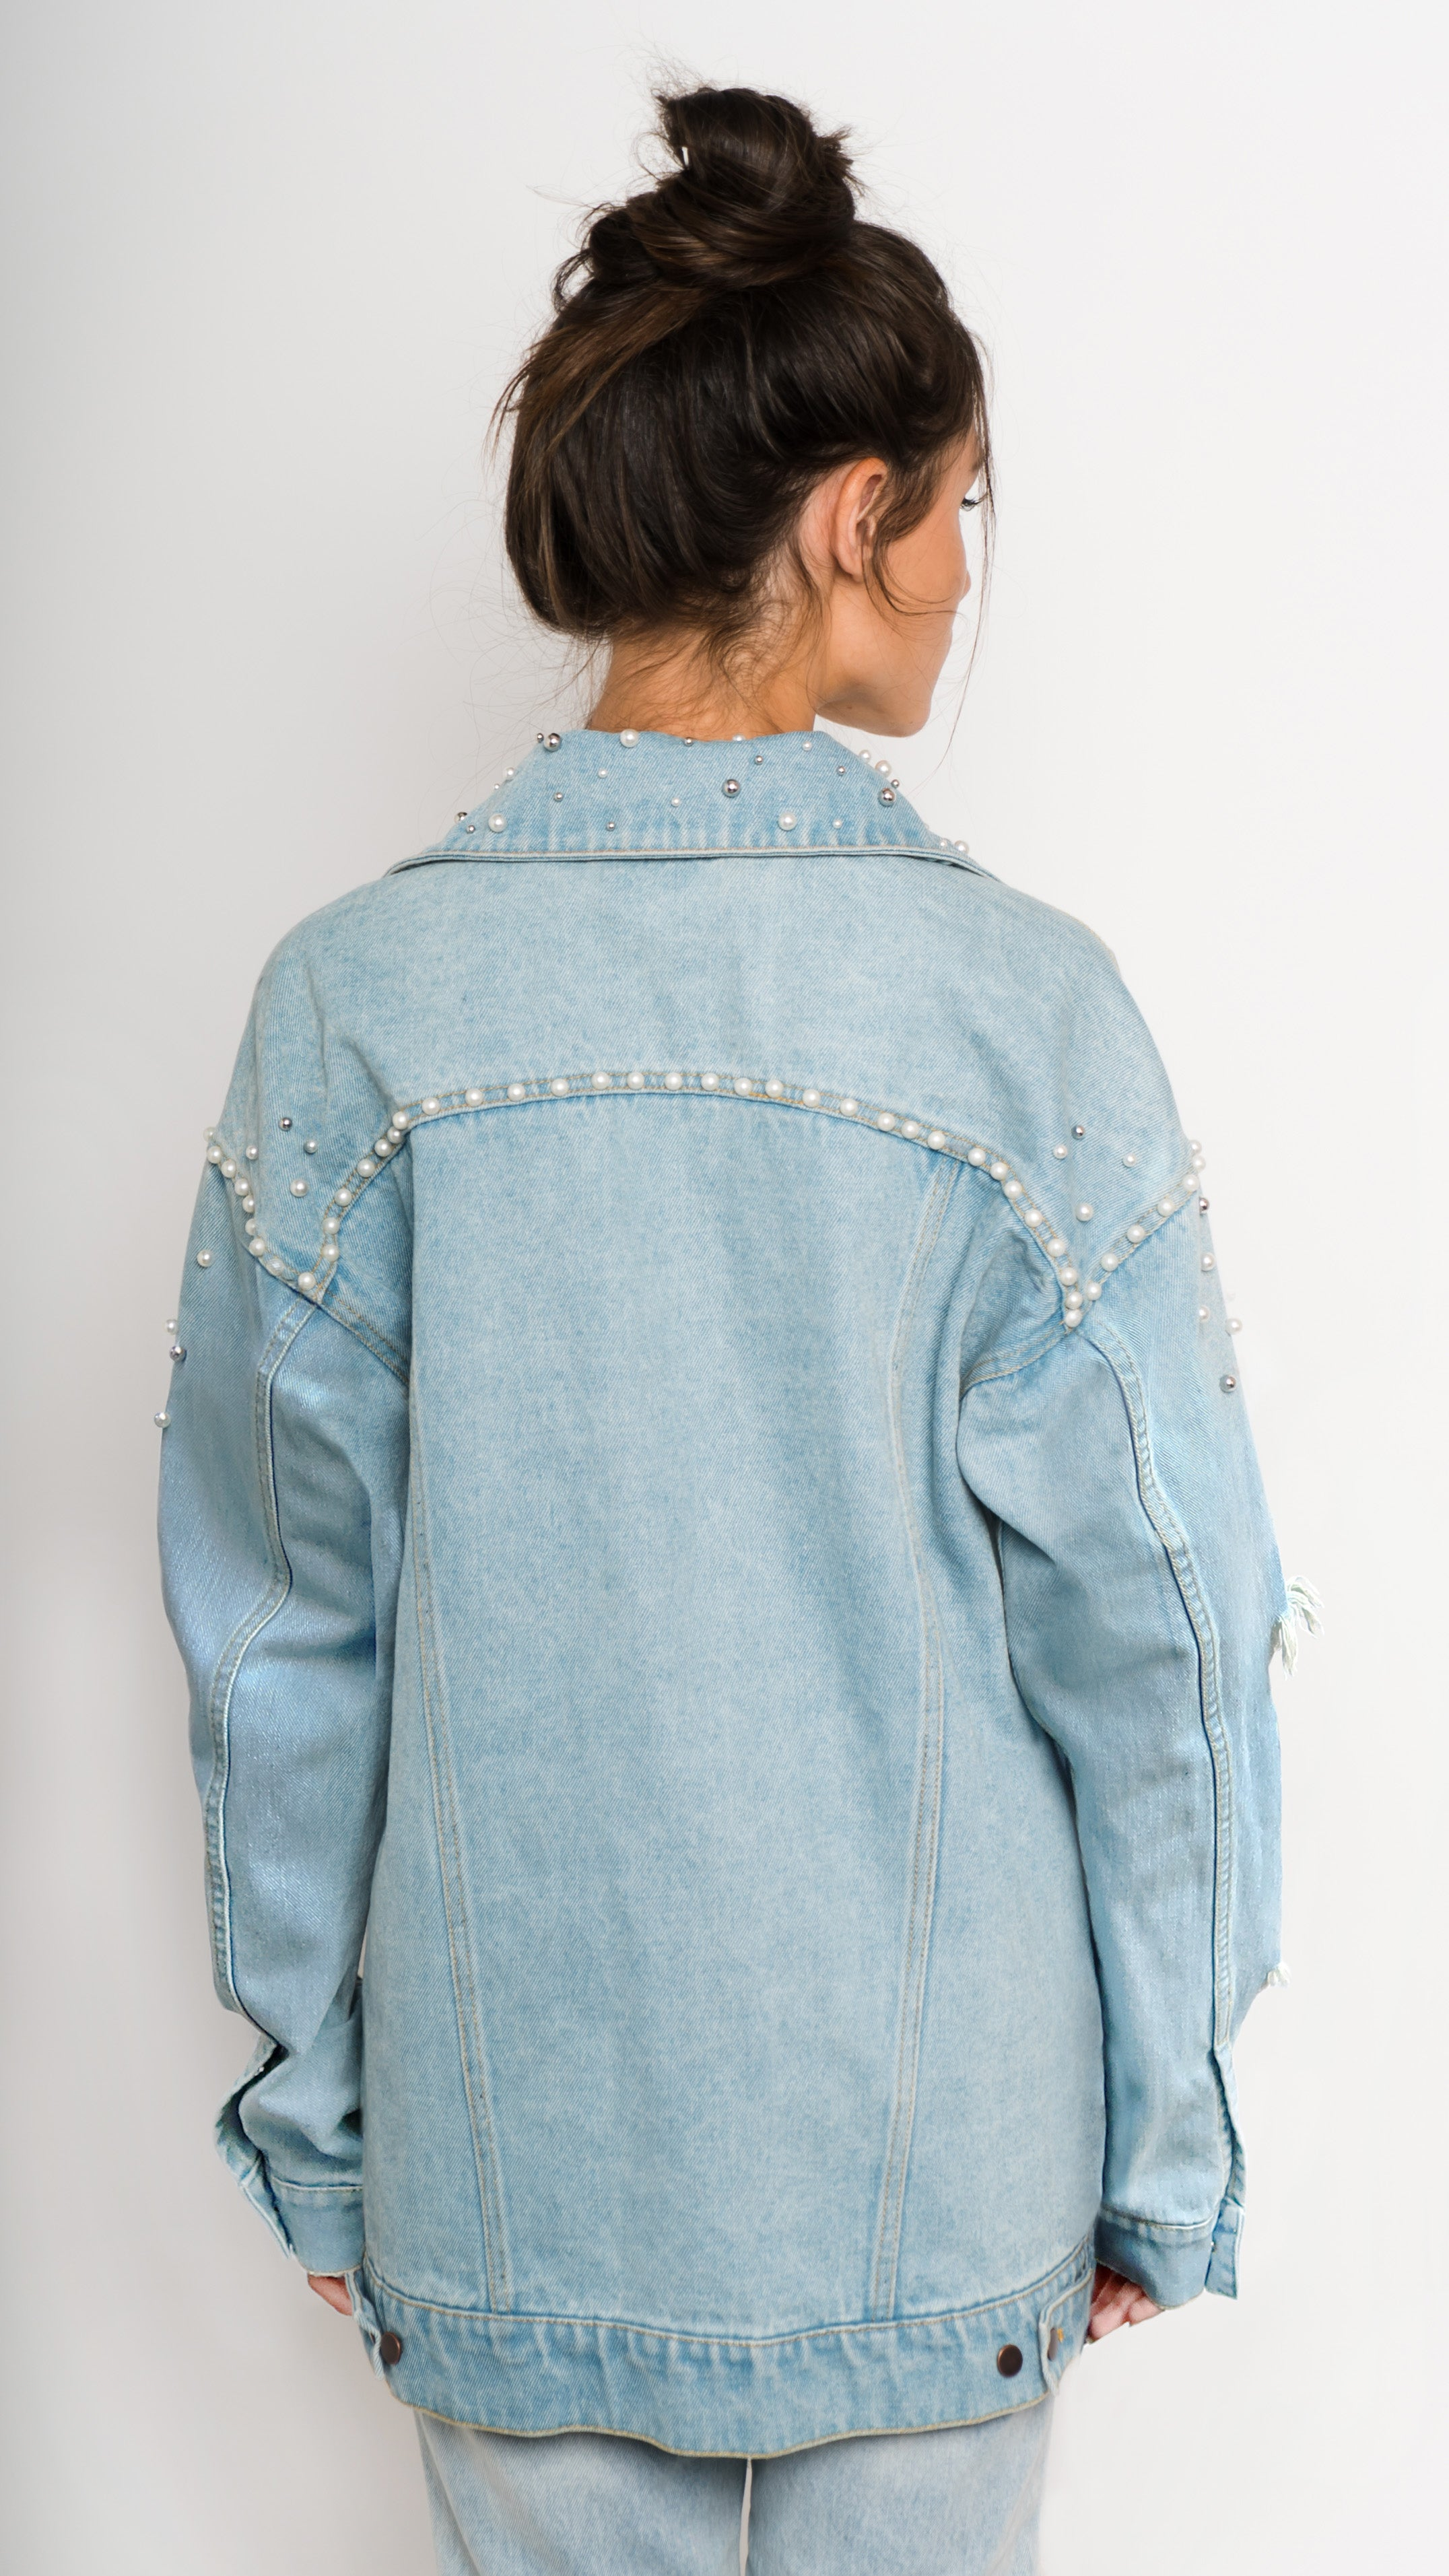 Pearl Studded Distressed Denim Jacket Back View